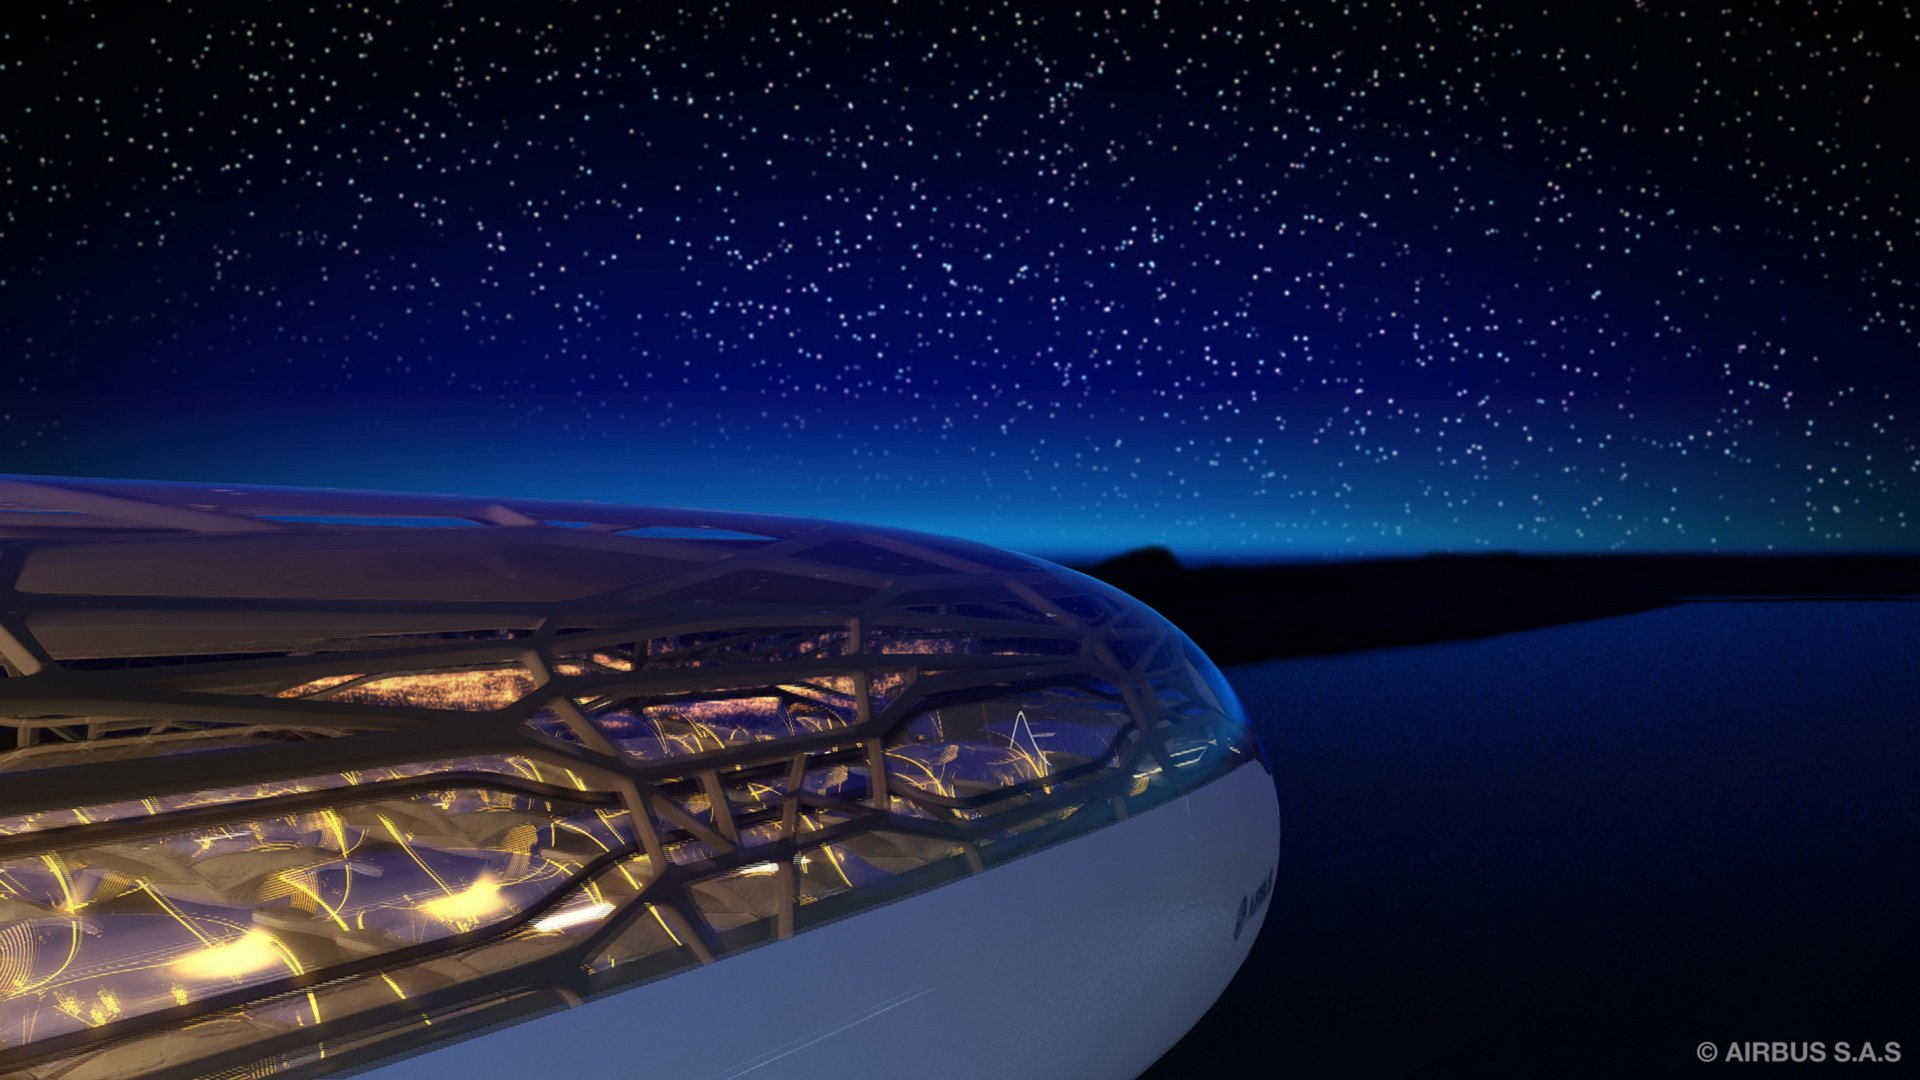 The future by Airbus - Passengers in 2050 can sit back and enjoy the night sky when travelling to destinations due to bionic structure and interactive membrane of the Airbus Concept Cabin (14 Juin 2011)